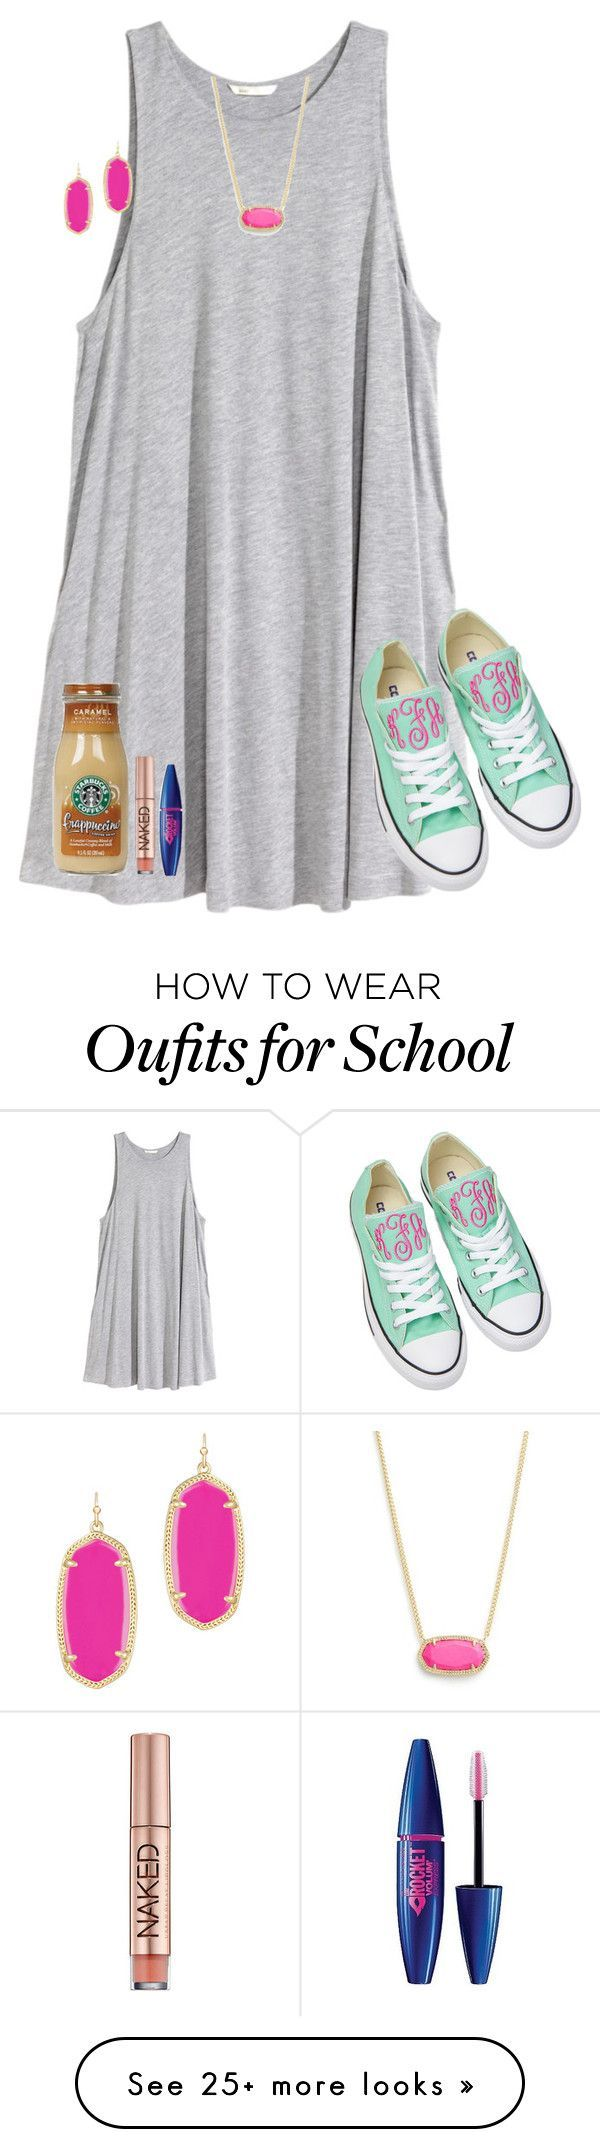 """""""Day 2: Last Day of School"""" by typical-lizzie on Polyvore featuring H&M, Kendra Scott, Converse, Urban Decay, Maybelline and schoolsoutmadiandashe"""